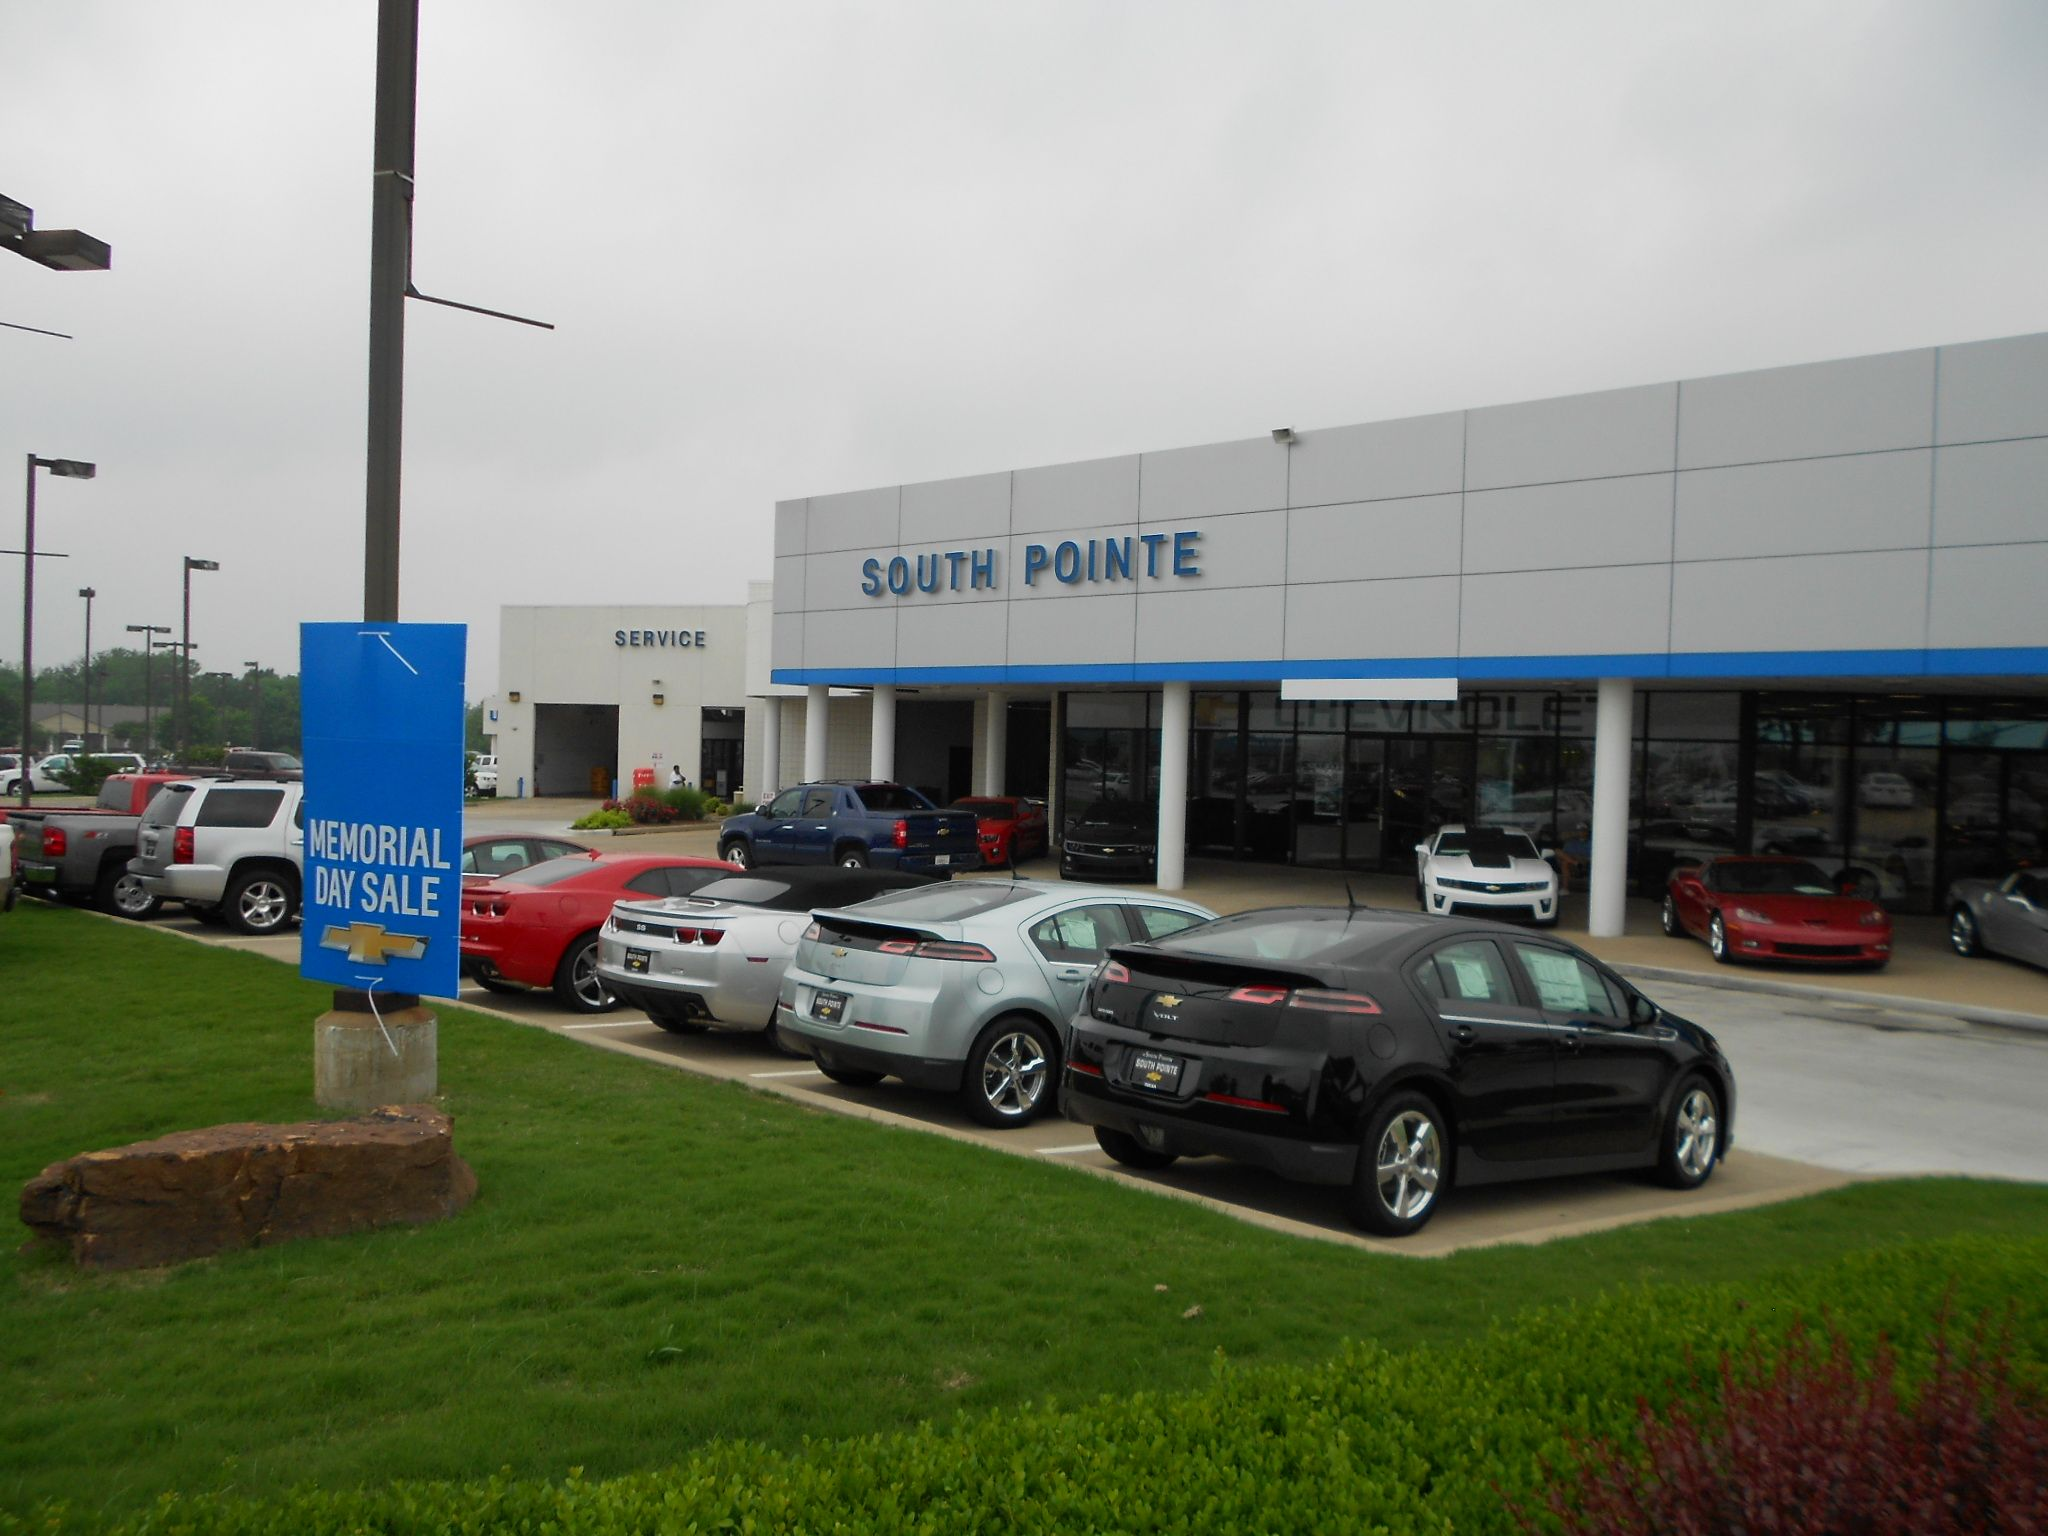 We Have A Variety Of Cars, Which One Do You Prefer? South Pointe Chevrolet